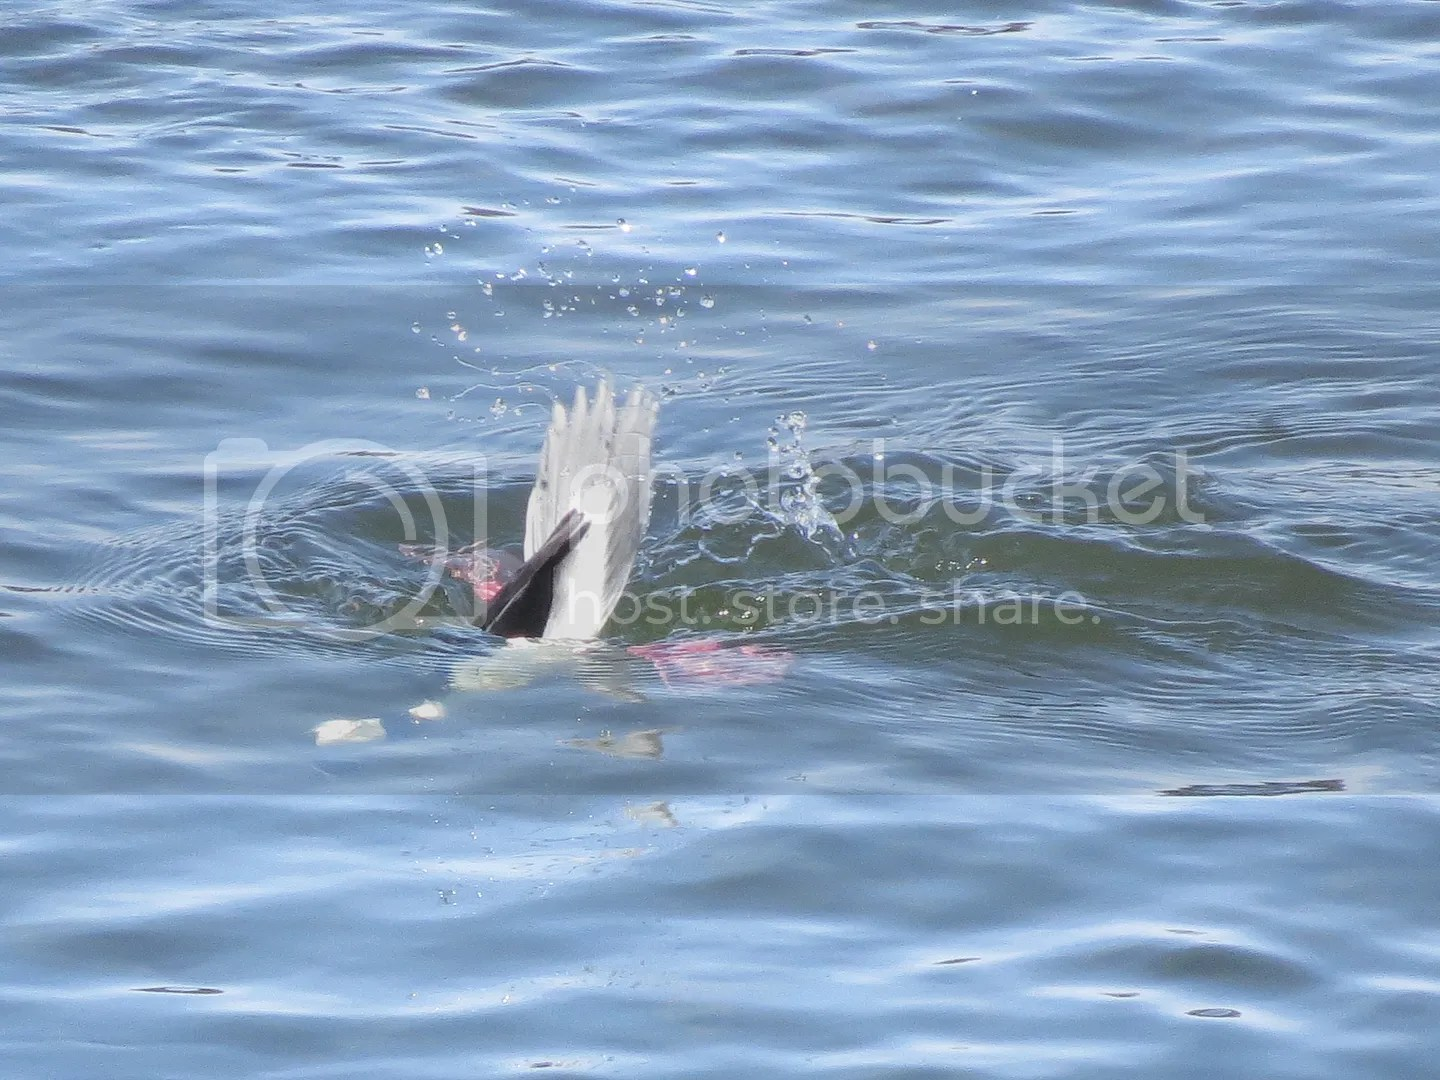 Diving Bufflehead photo IMG_7948_zpshpfykjk4.jpg